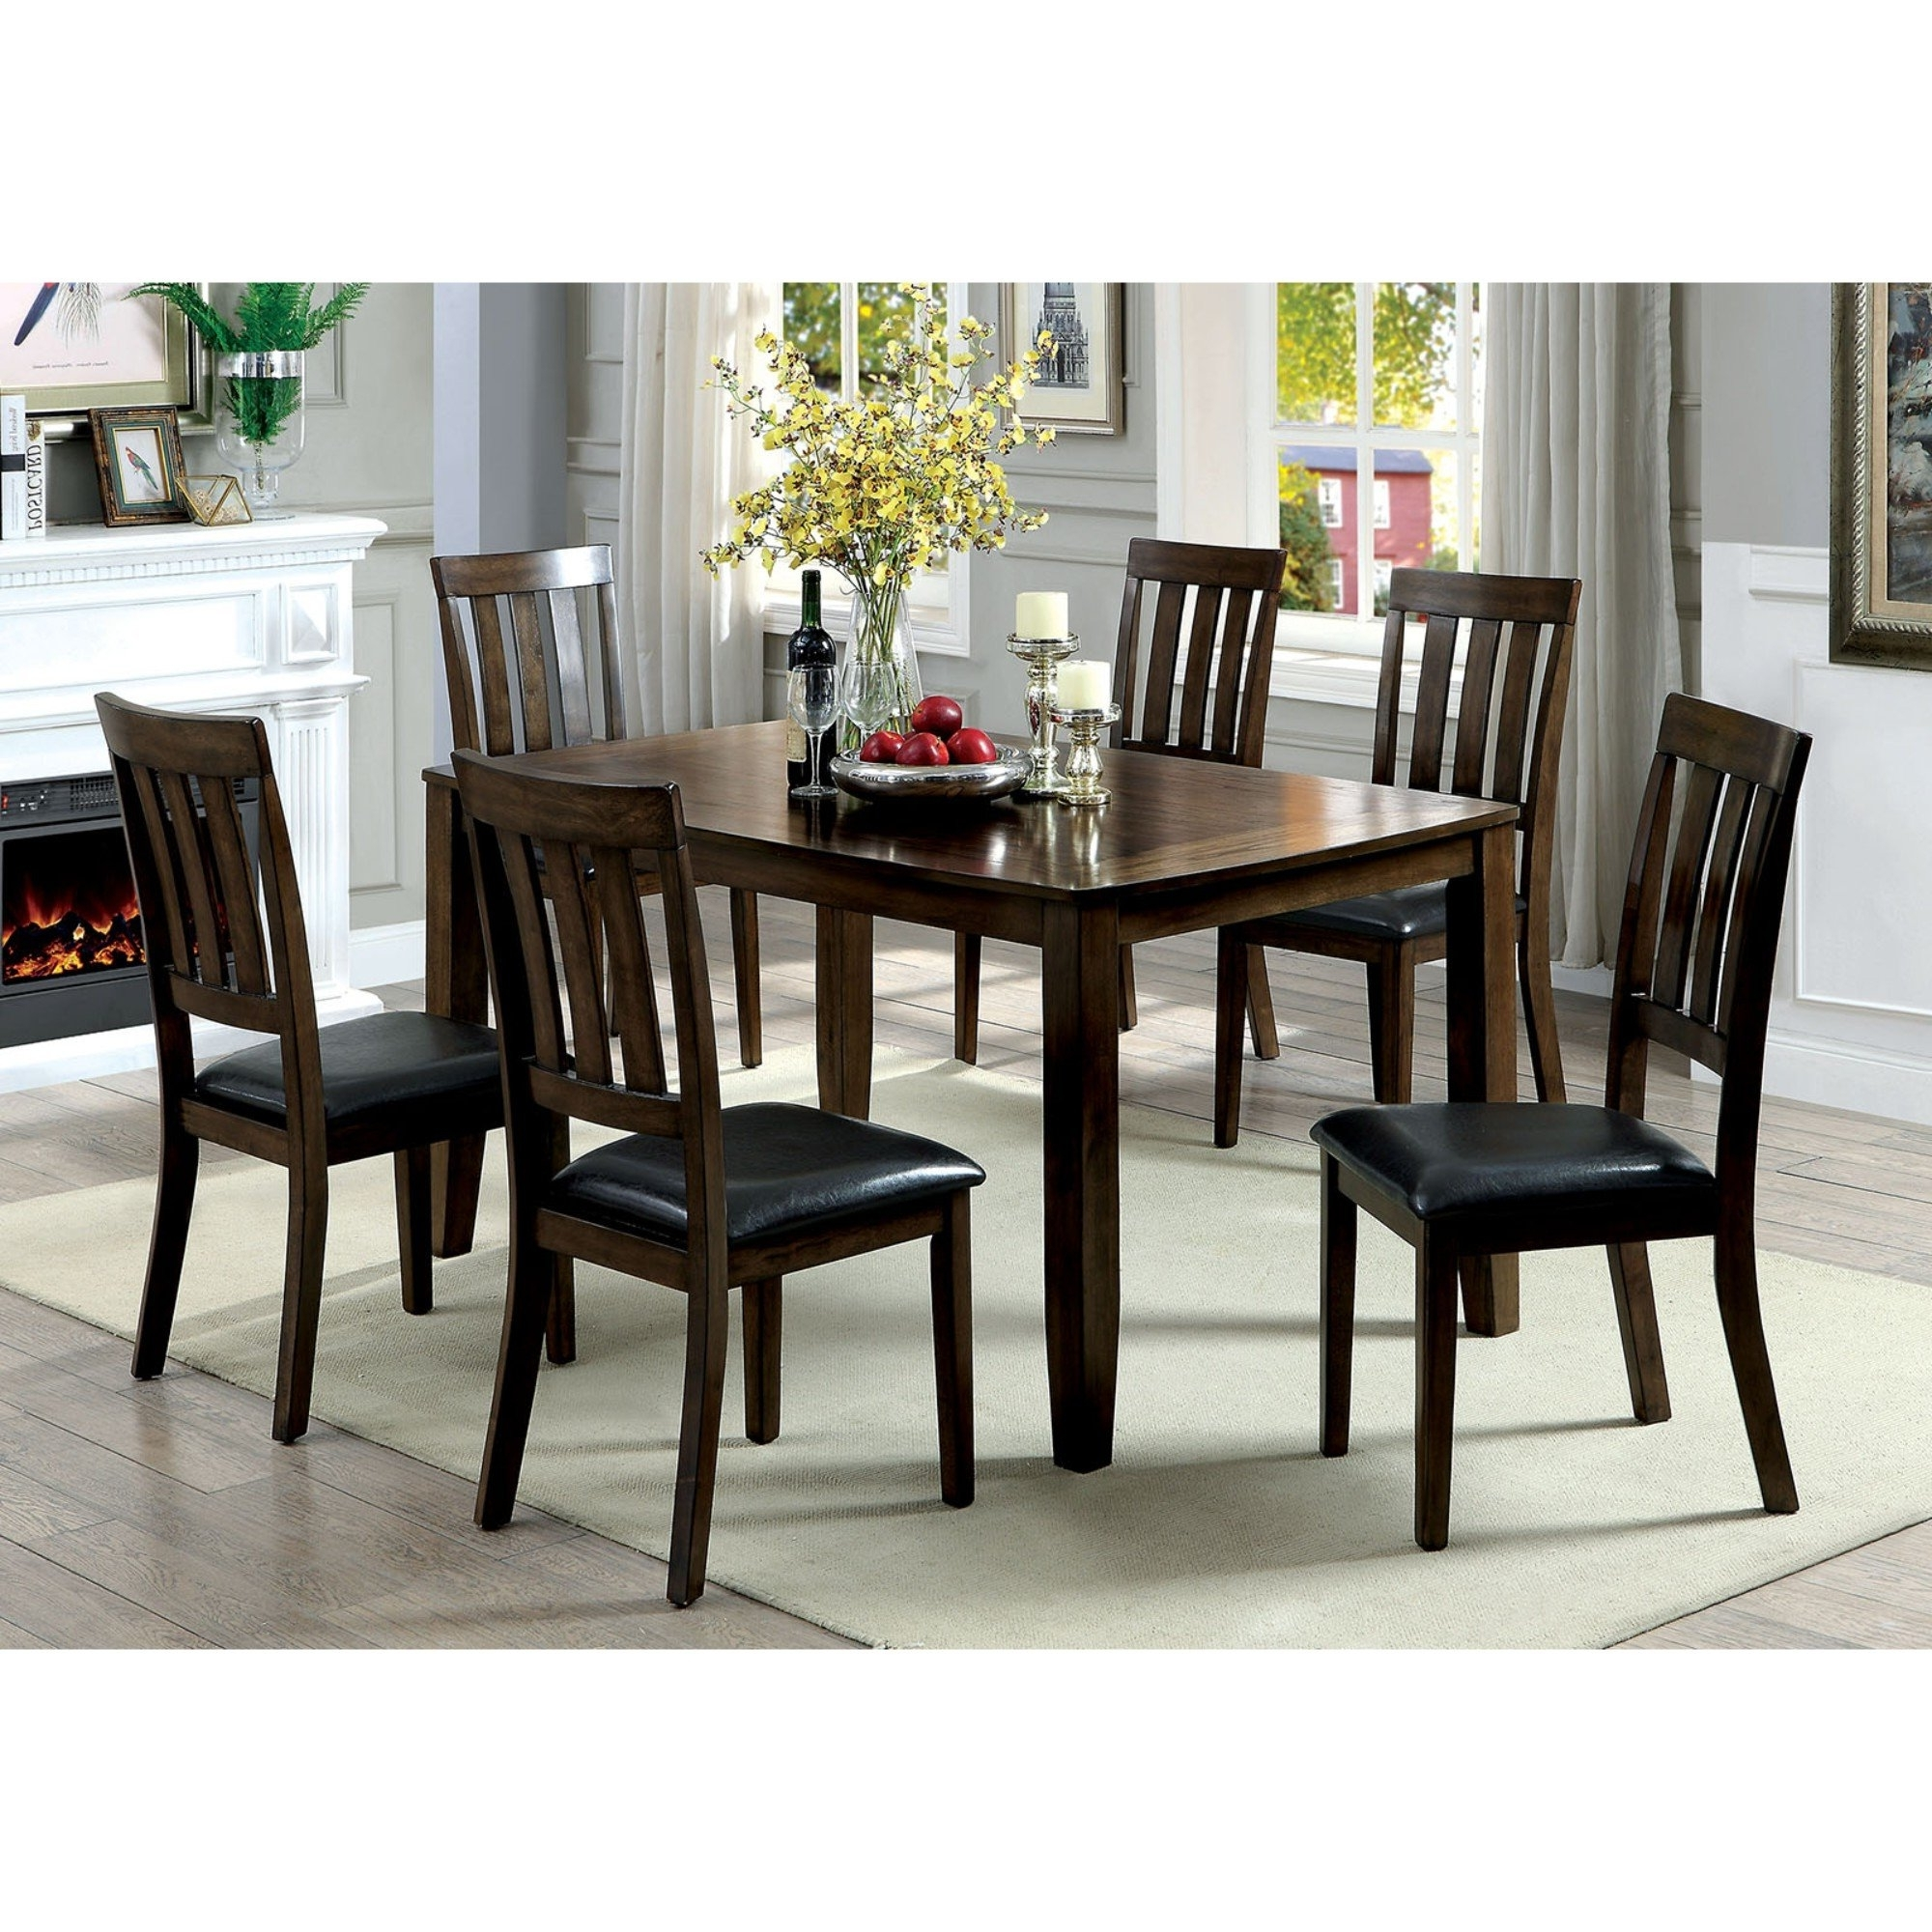 Candice Ii 7 Piece Extension Rectangular Dining Sets With Uph Side Chairs Inside Latest Millwood Pines Devon Wooden 7 Piece Counter Height Dining Table Set (View 4 of 25)